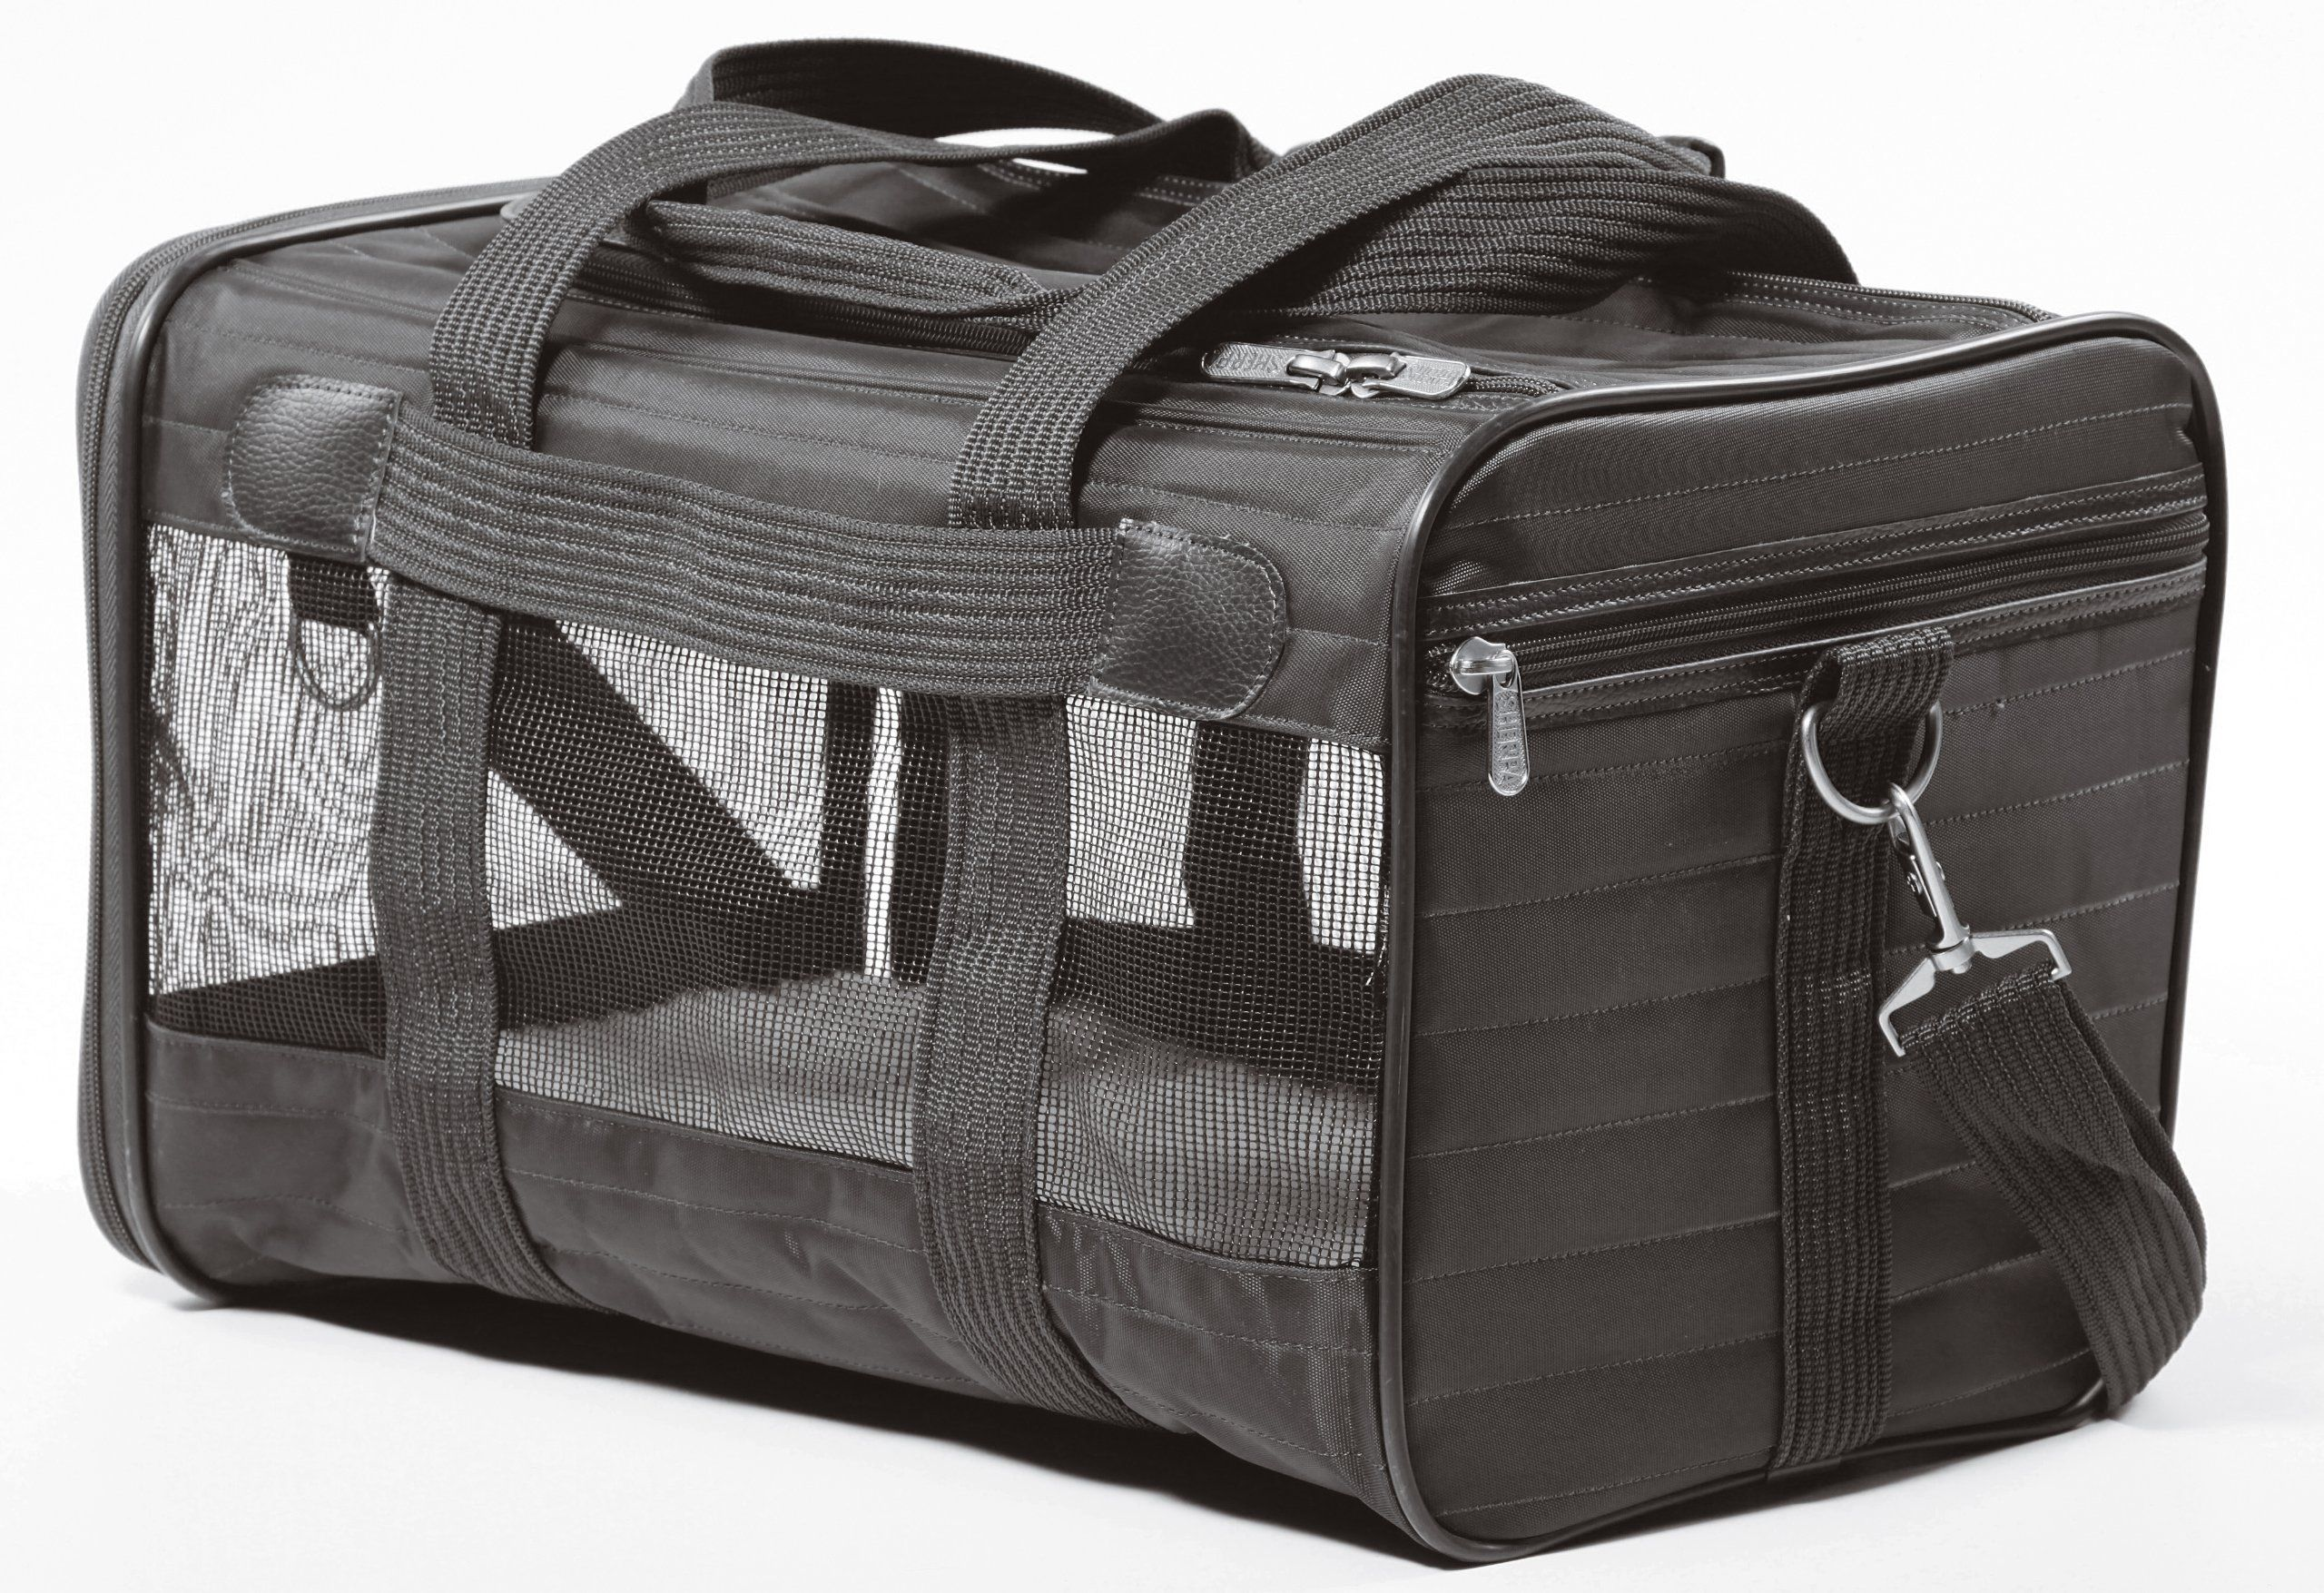 Sherpa Original Deluxe Pet Carrier, Large